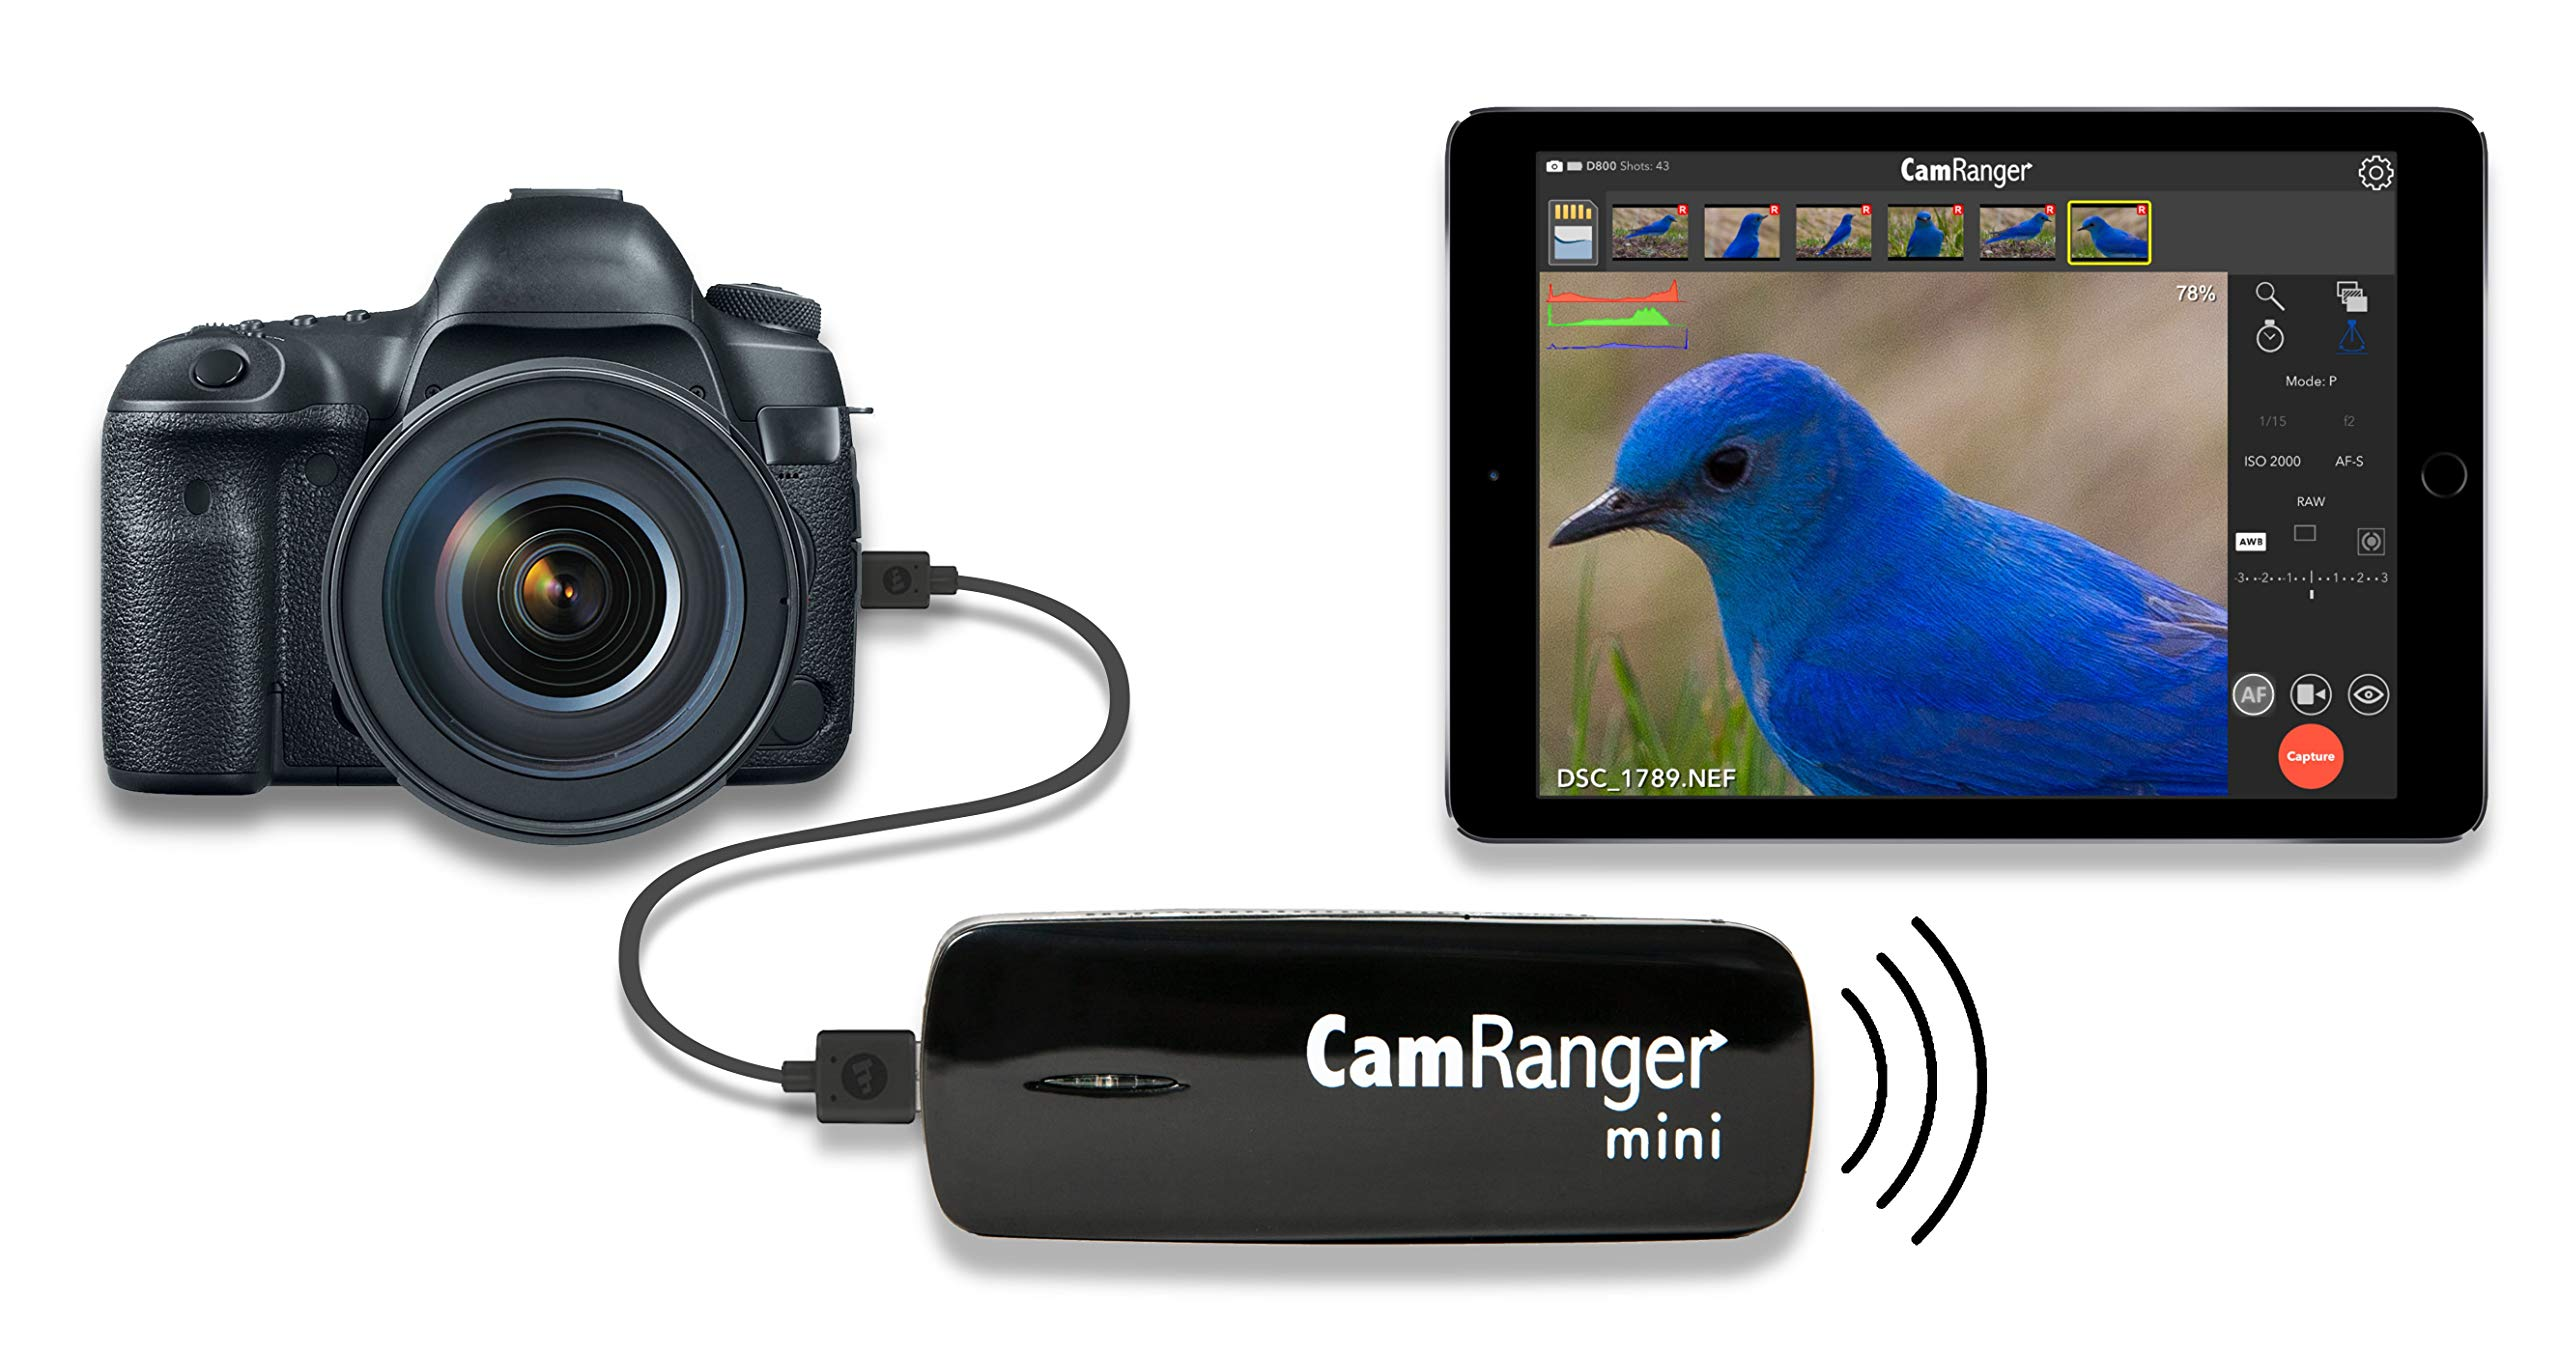 CamRanger Mini (Wireless Remote for Canon and Nikon DSLR Cameras, for iPhone, iPad and Android Devices, intervalometer, Bulb Mode, Change Settings, Camera Control) by CamRanger